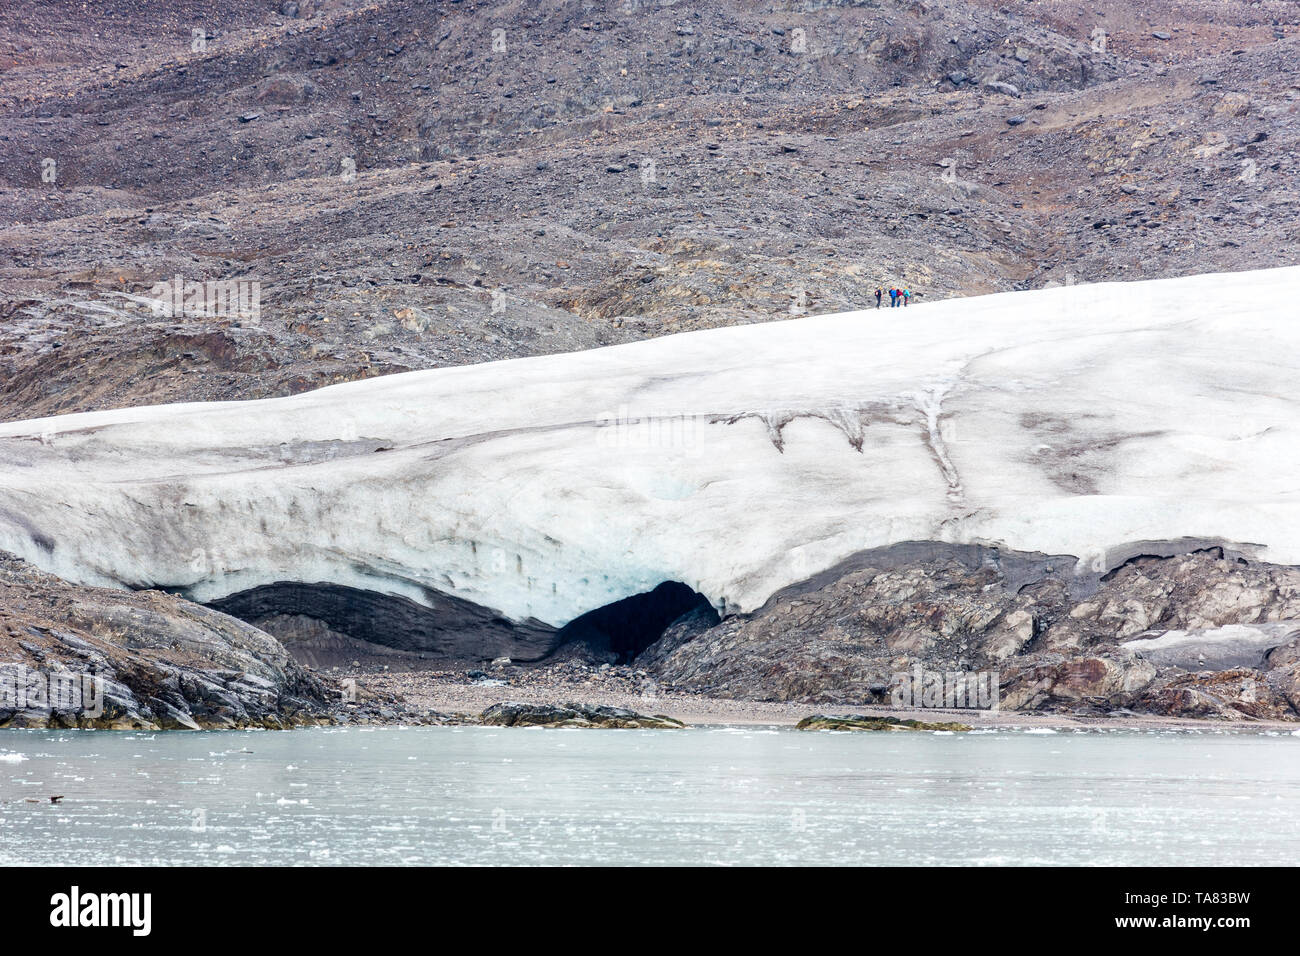 A group of hikers on Top of the glacier Nordenskiöldbreen near Pyramiden, on the coast of Billefjord, Svalbard. Norway - Stock Image